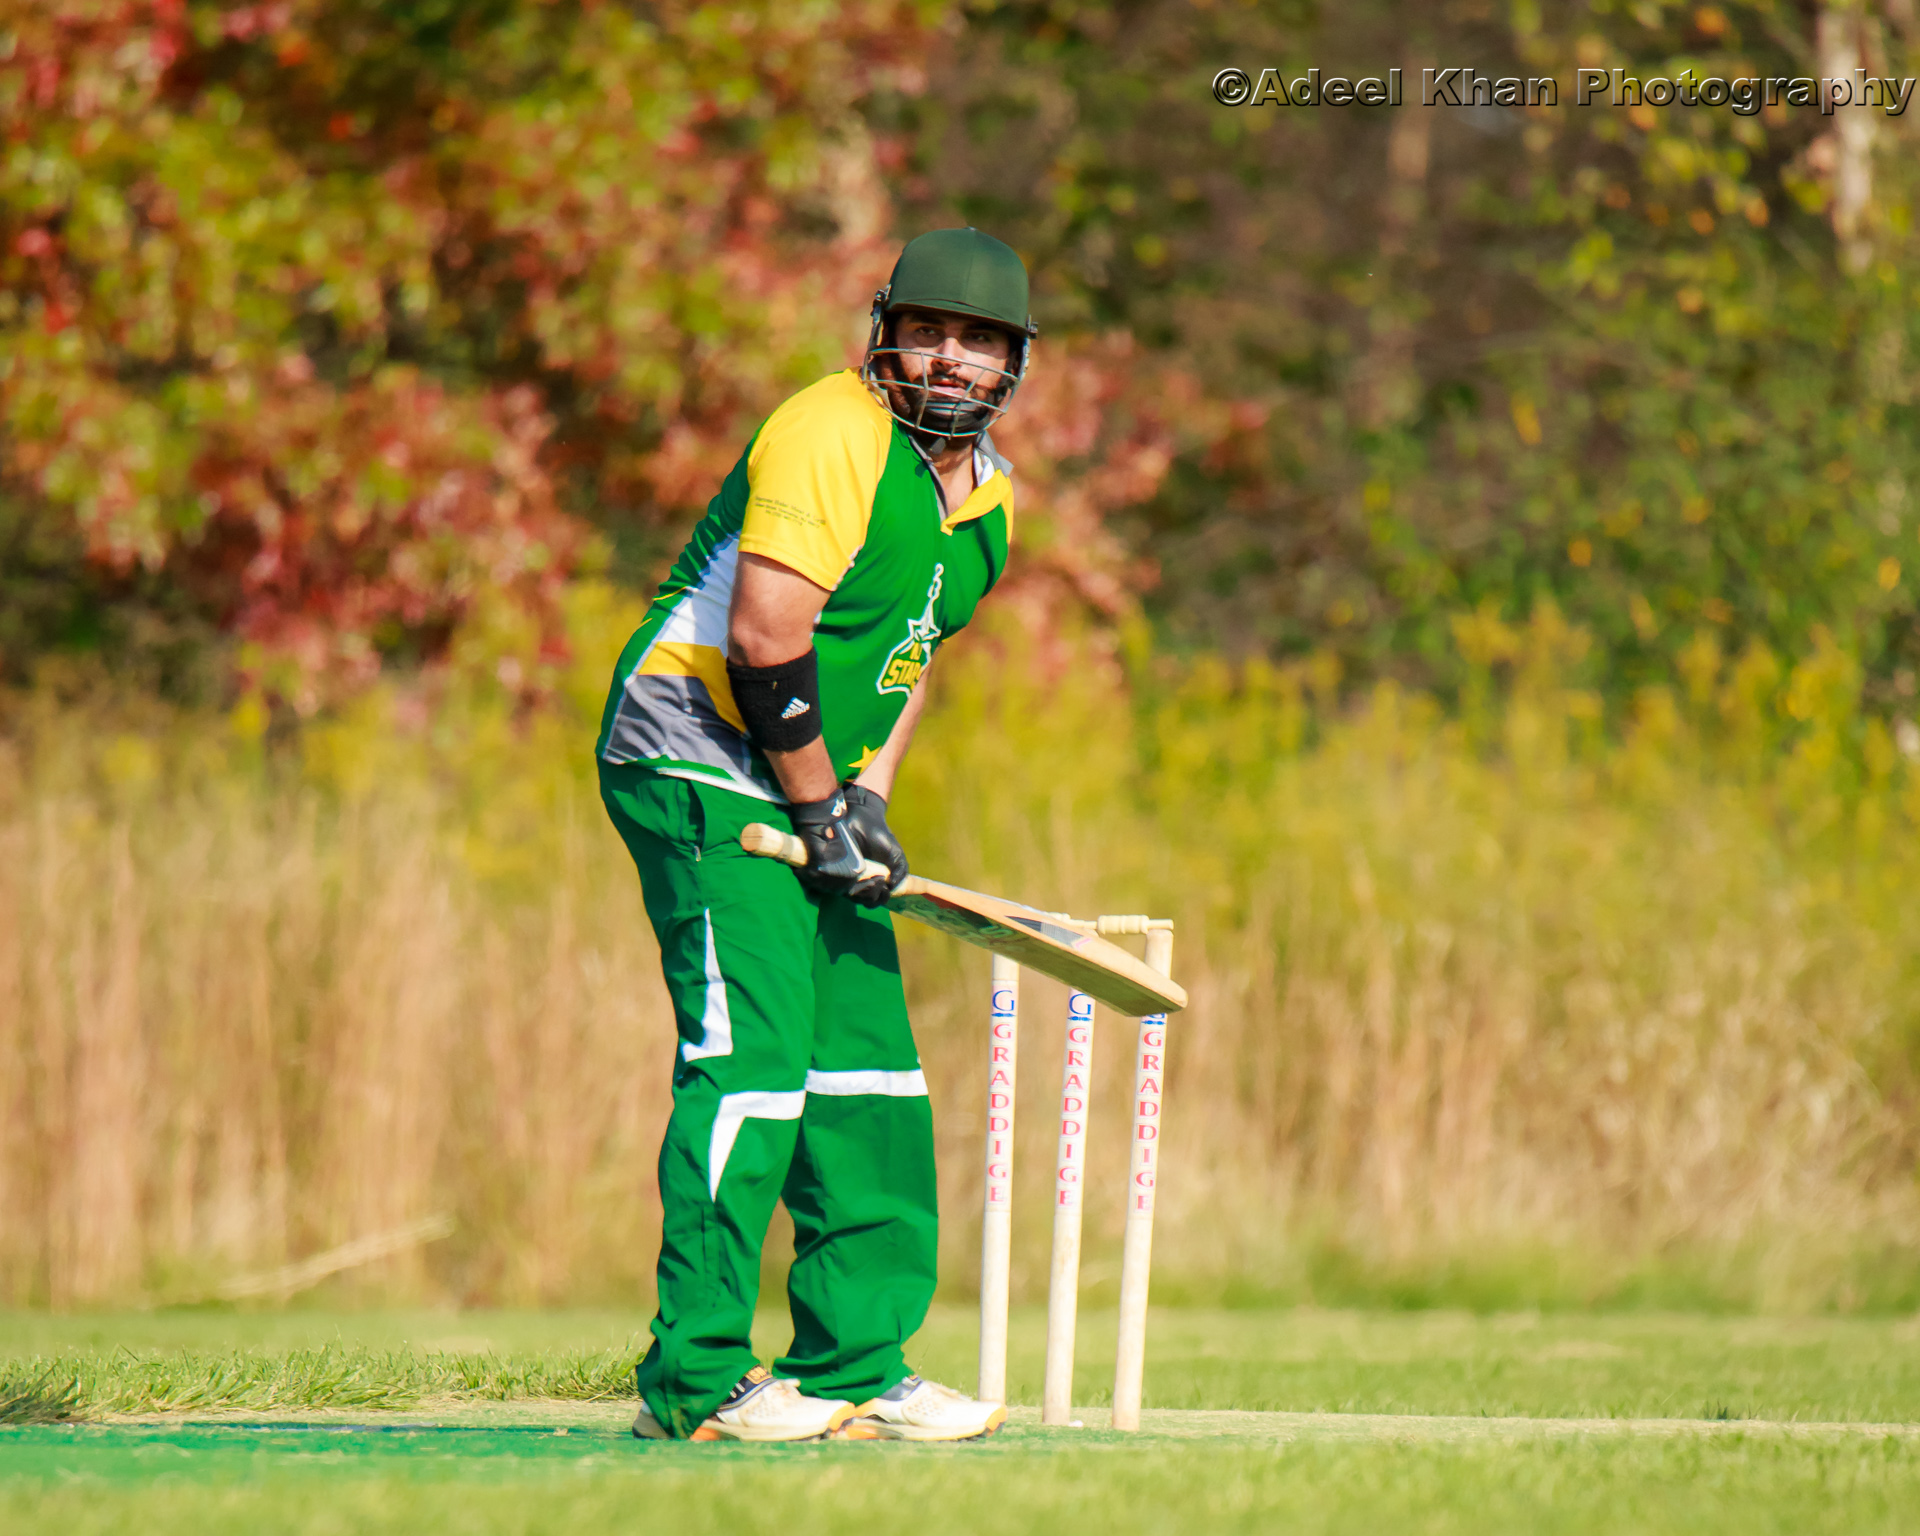 2017 NJSBCL Cricket Final: NJ Stars vs Legends